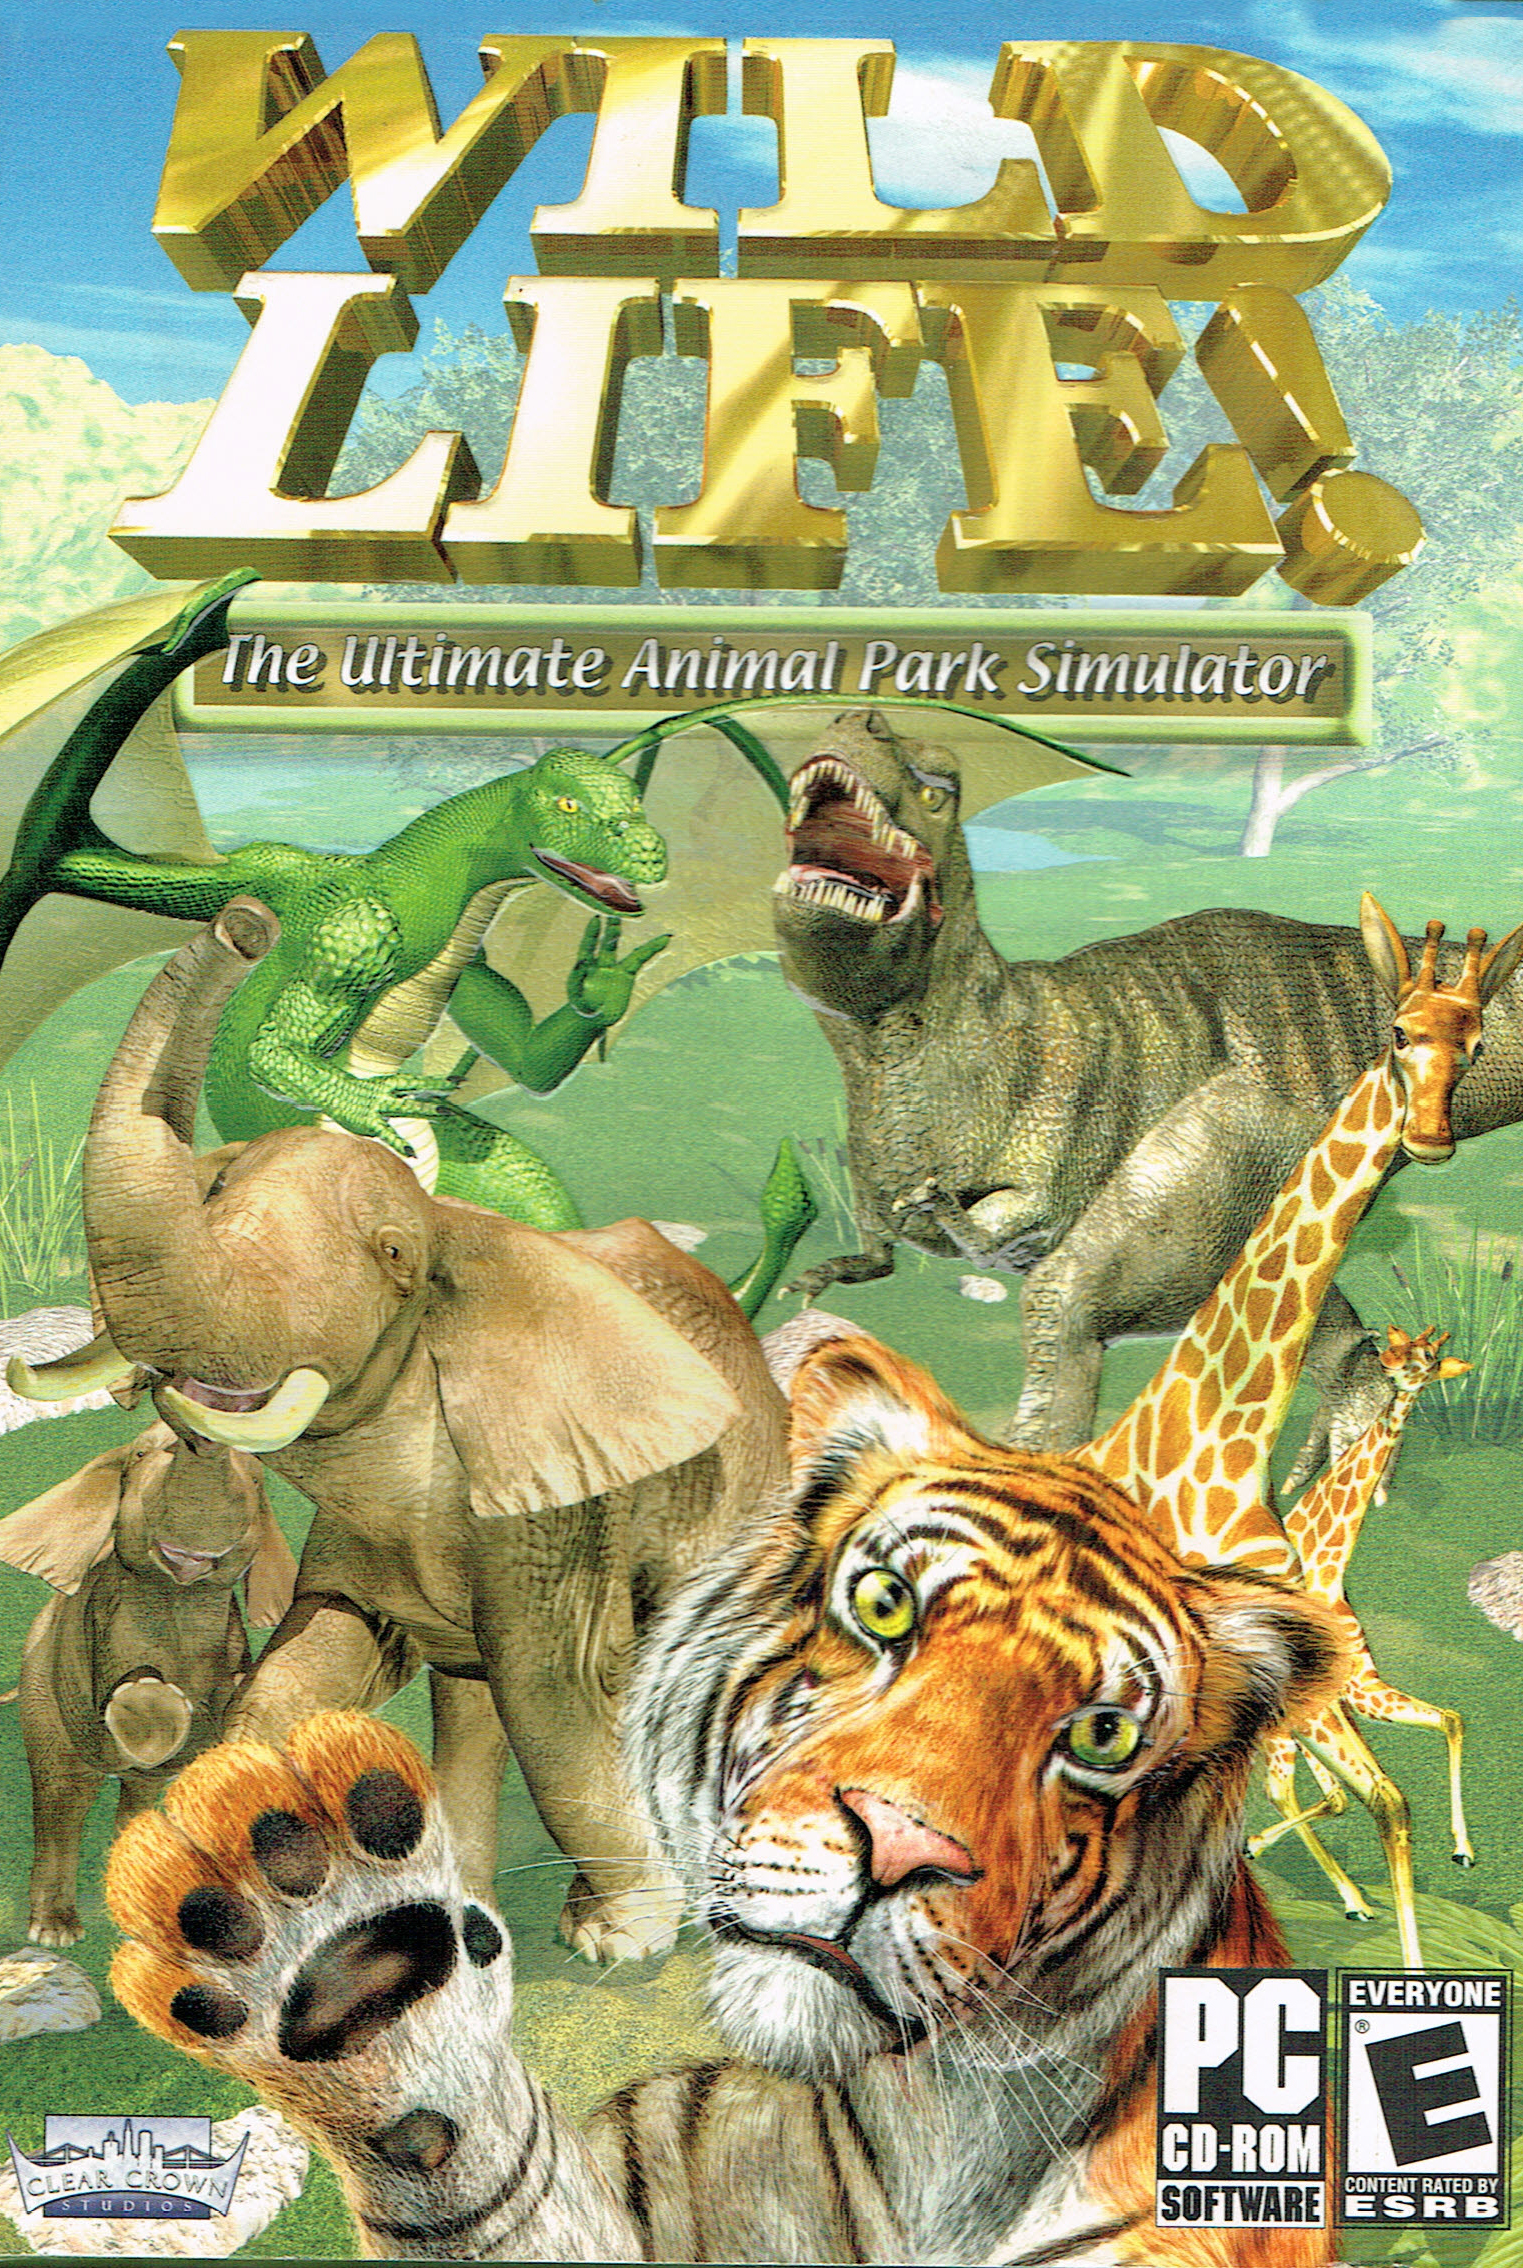 Image of: Iphone The Ultimate Animal Park Simulator 2005 1mobile Wild Life The Ultimate Animal Park Simulator video Game 2005 Imdb